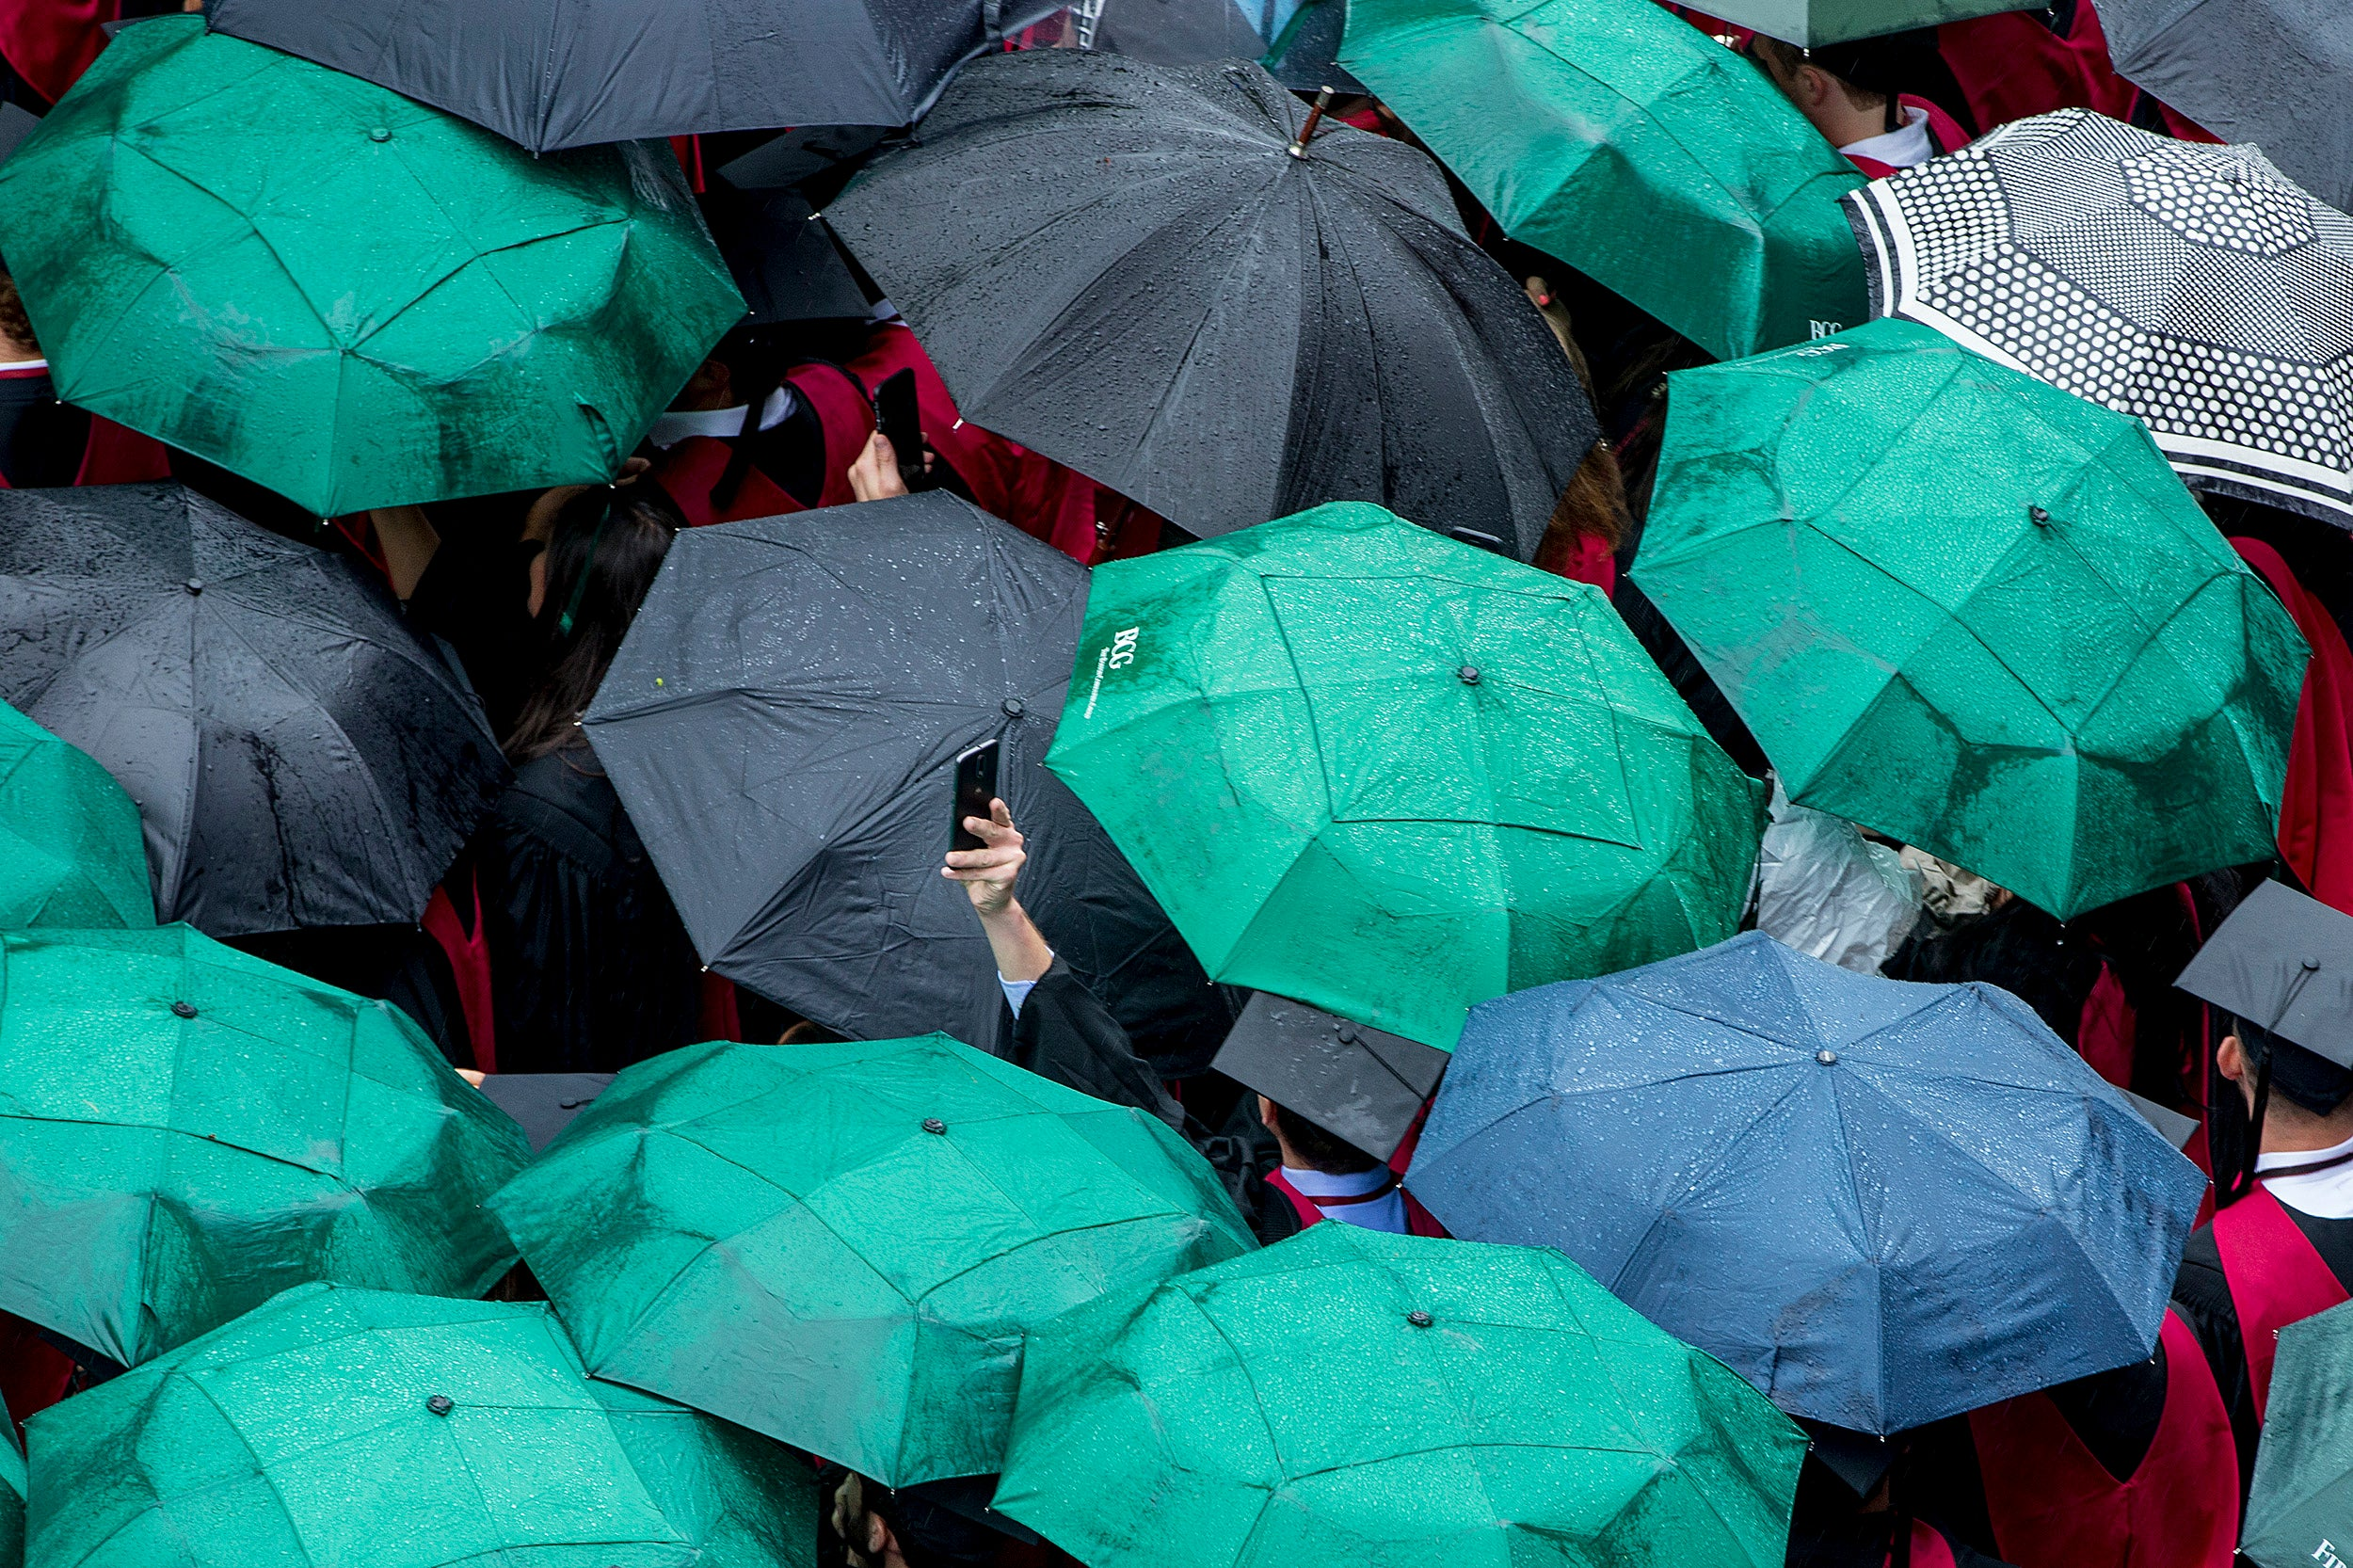 A Harvard graduate raises his phone to snap a picture above the umbrellas.